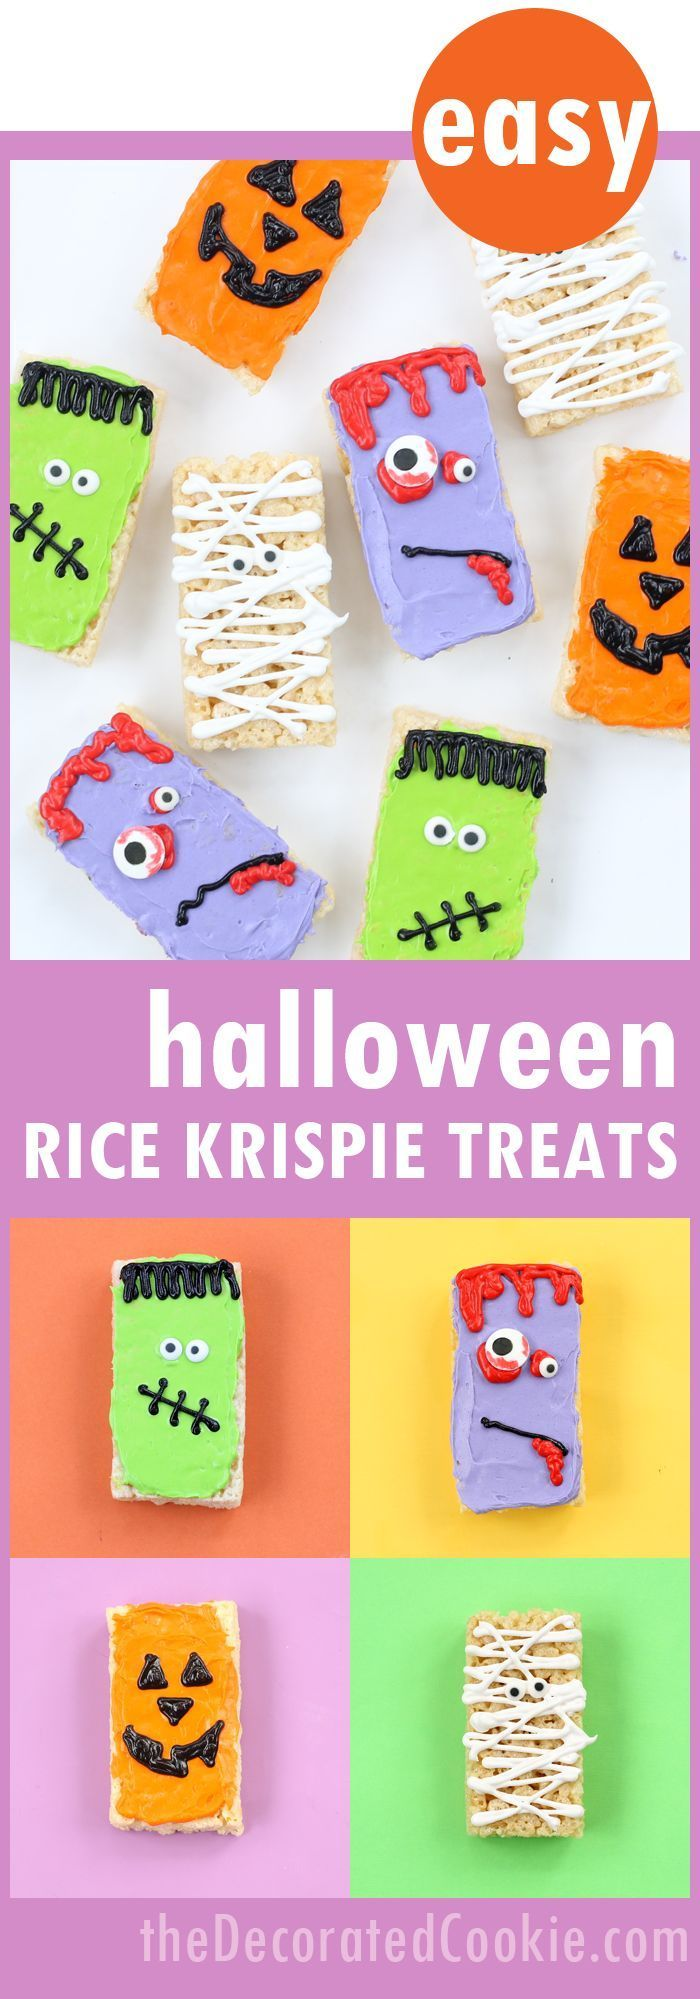 Halloween Rice Krispie Treats ideas #halloweenricekrispietreatsideas EASY Halloween Rice Krispie Treats 4 ways! Use store-bought frosting and treats for a quick Halloween dessert idea. #halloweenricekrispietreatsideas